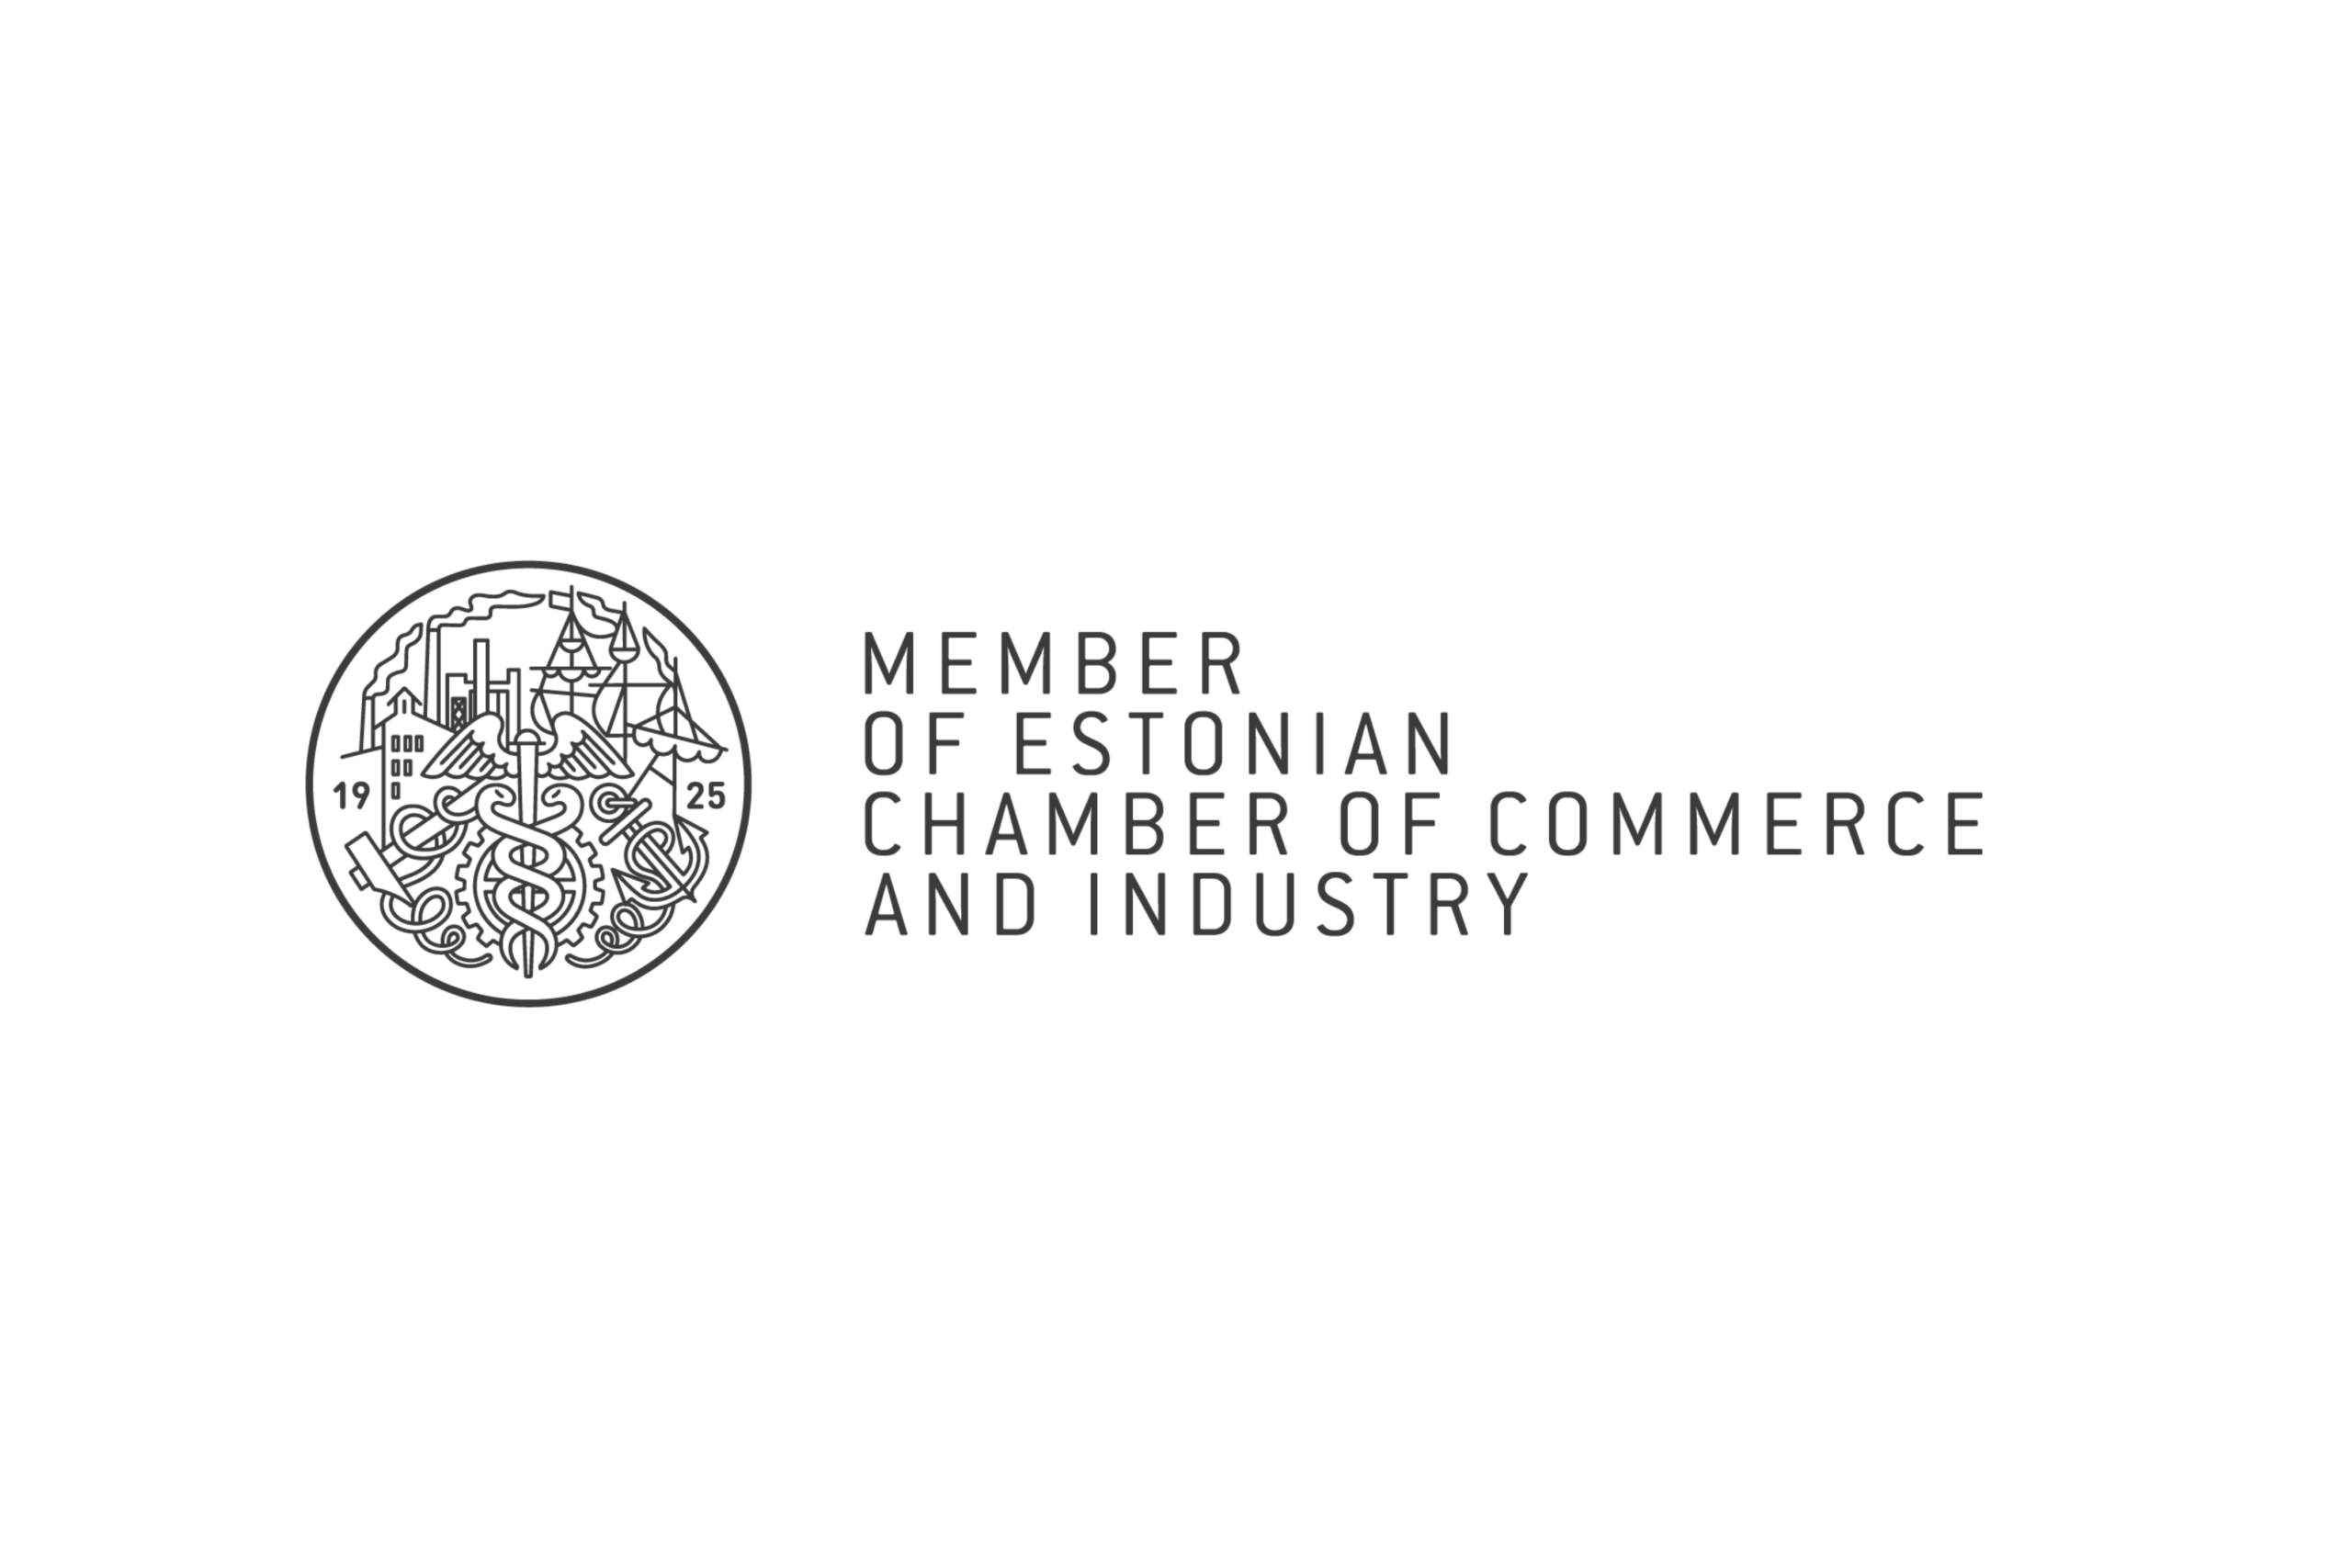 Logo: Member of Estonian chamber of commerce and industry